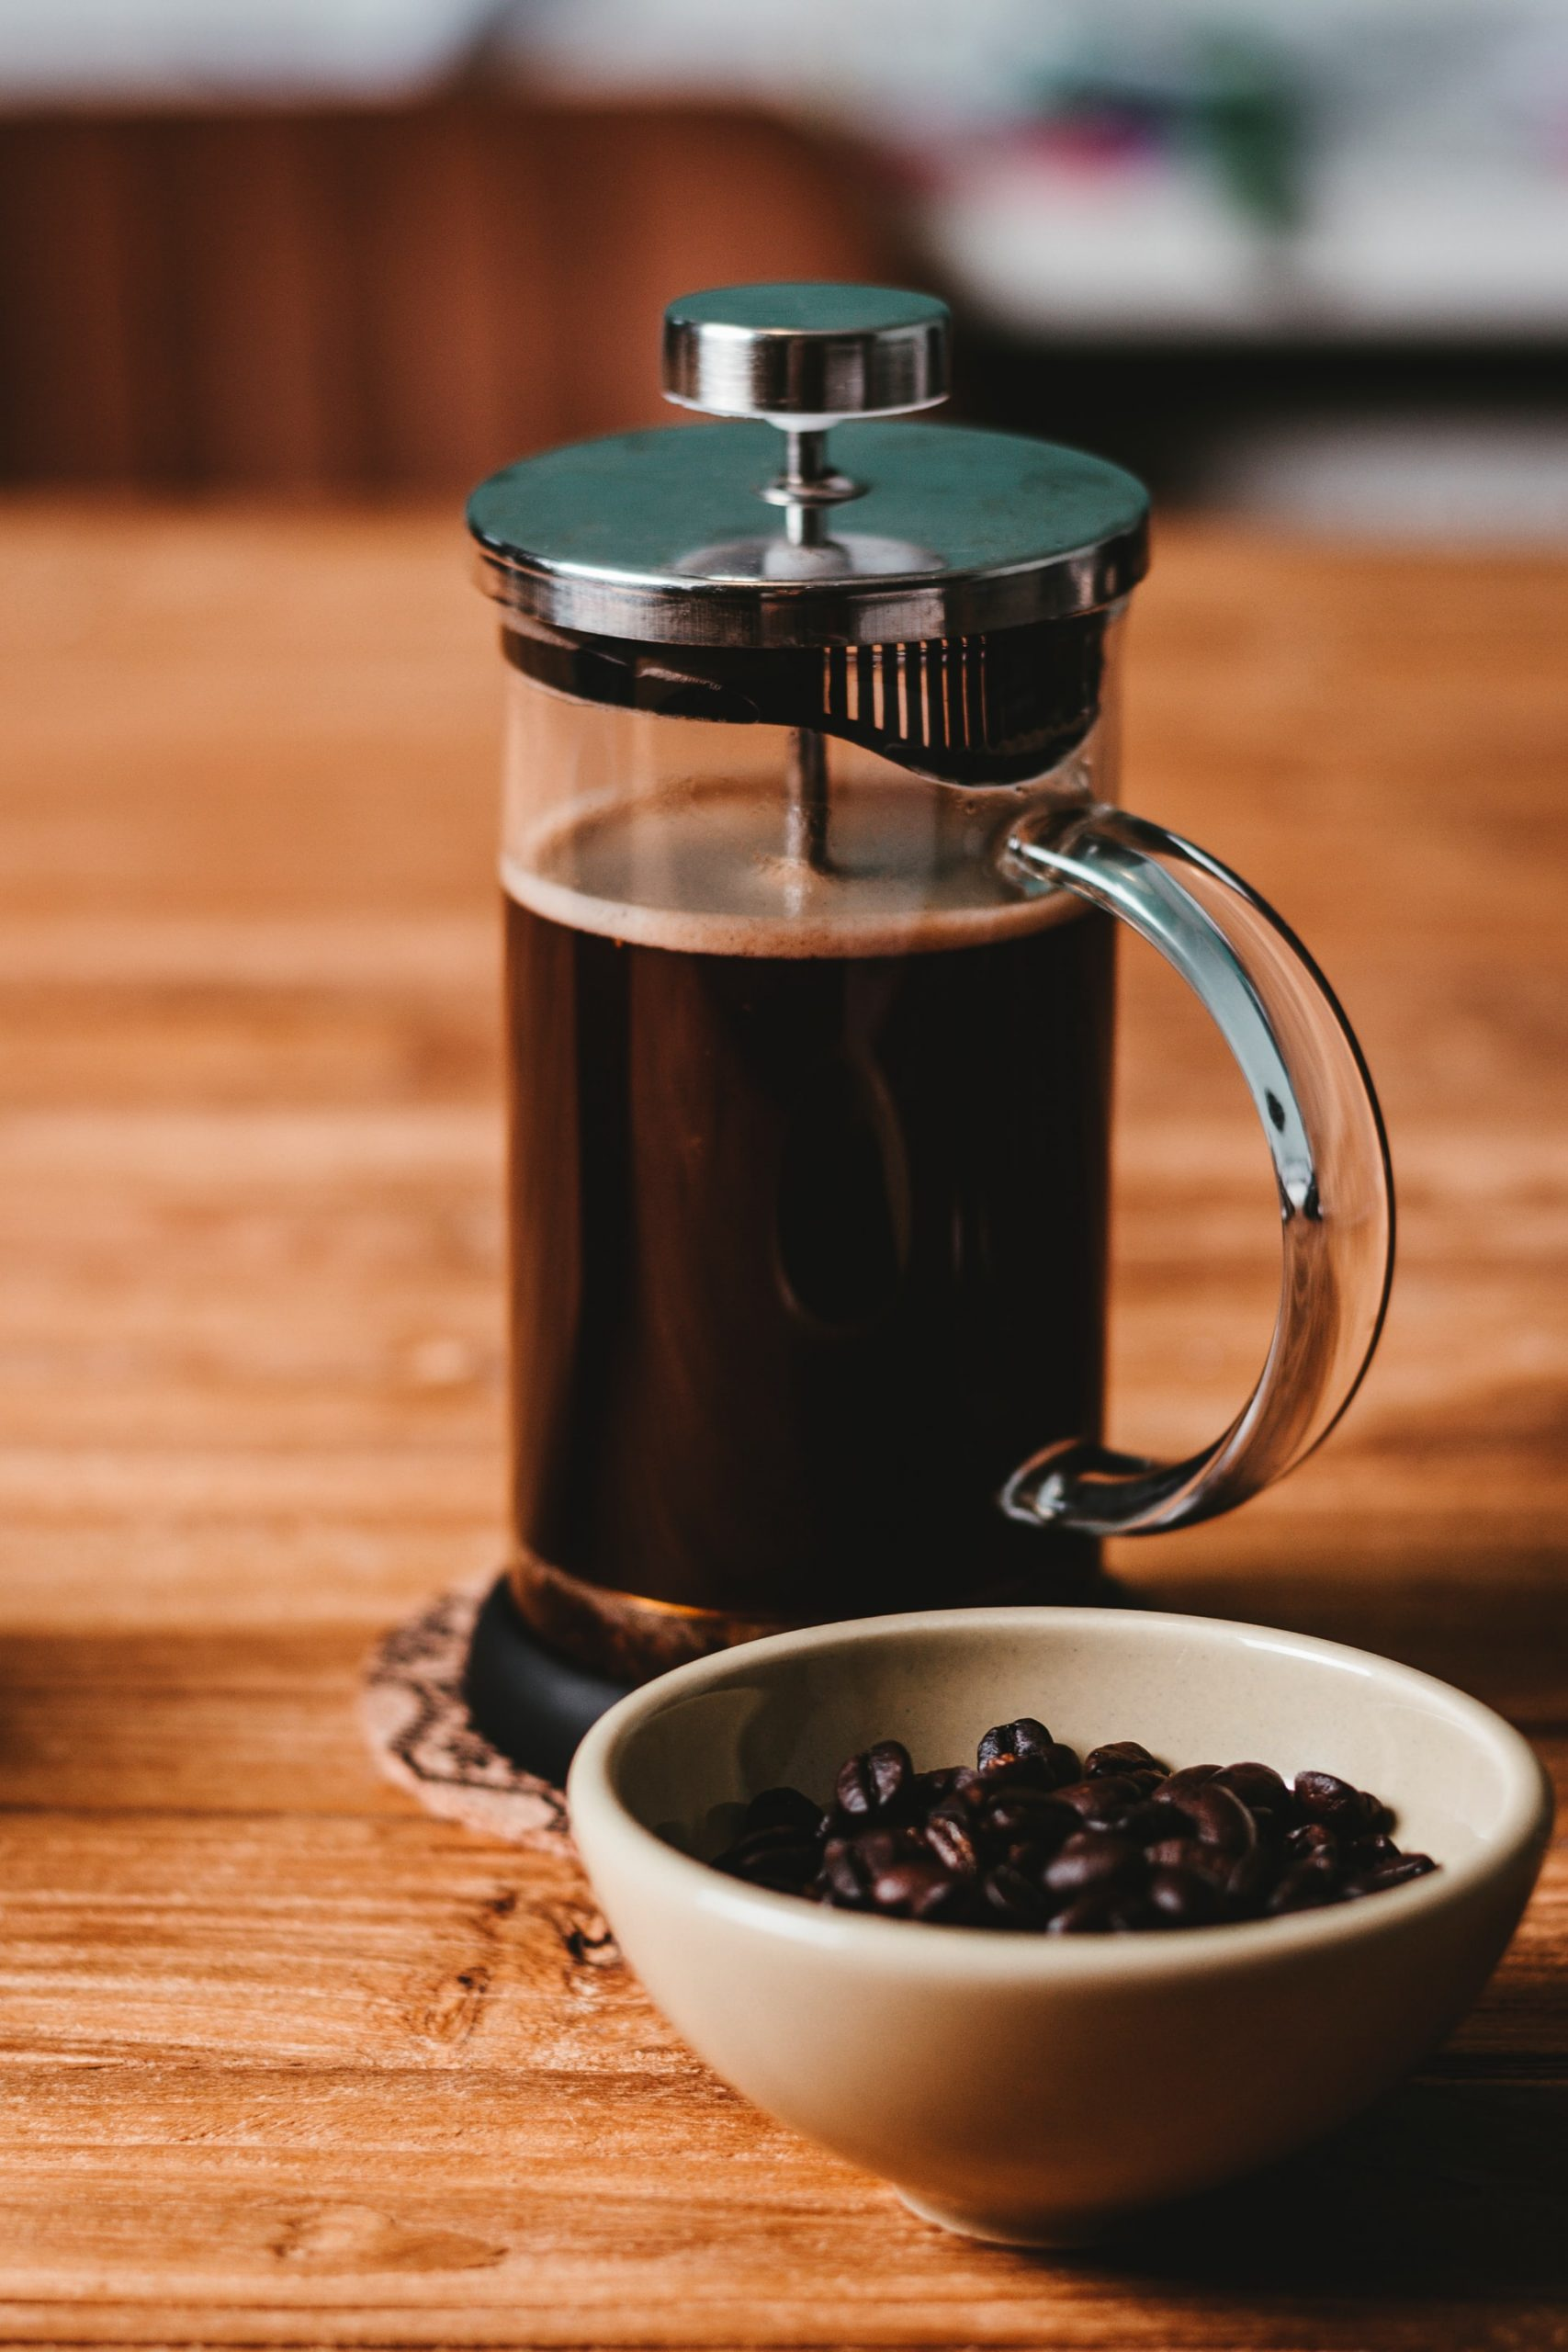 A French Press or cafetière is a popular coffee brewing method